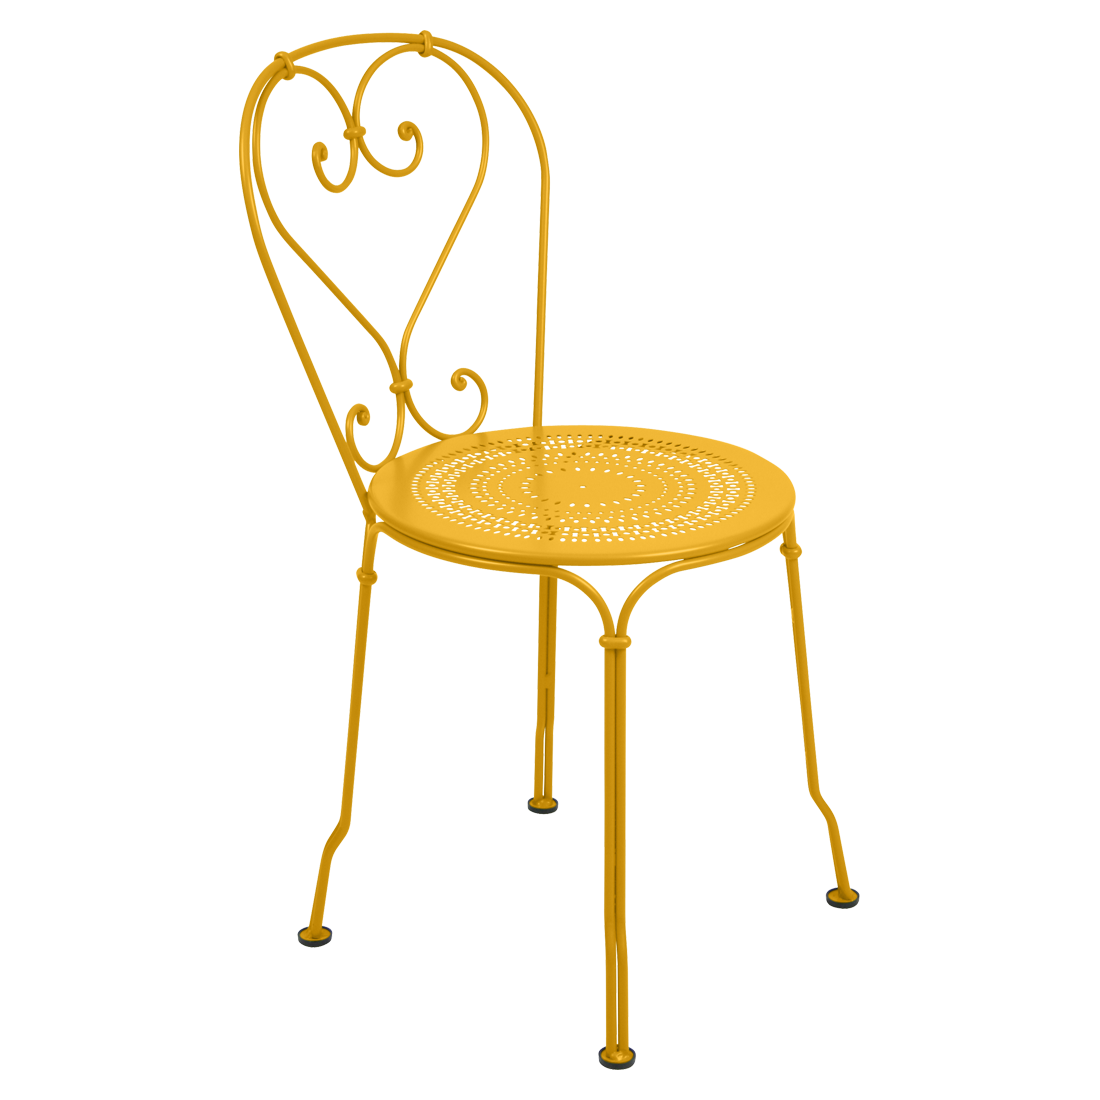 1900 Chair Metal Chair Garden Furniture